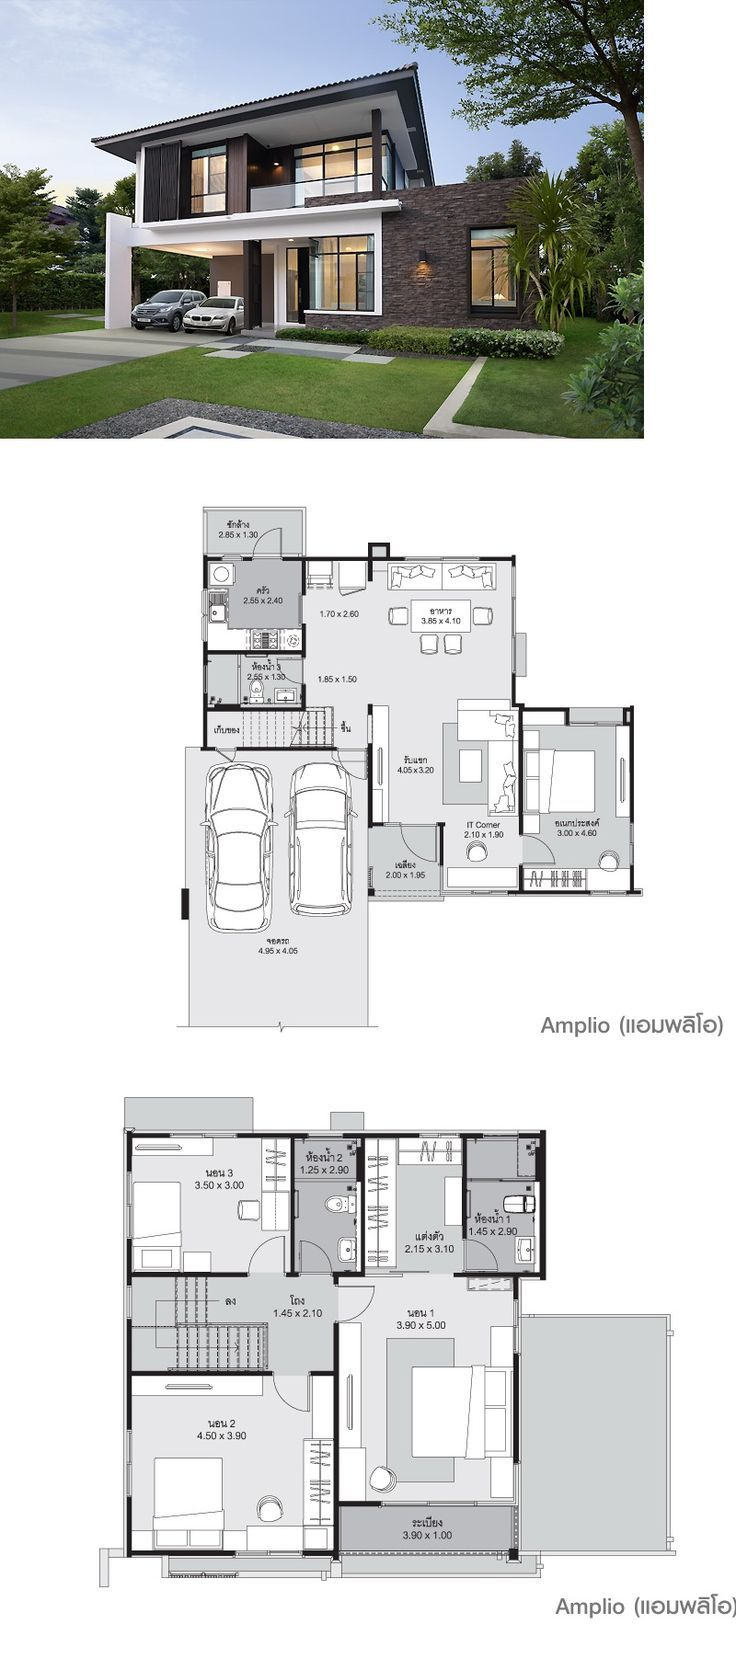 Sims haus two storey house plans plan story also pin by razor on architecture pinterest and rh